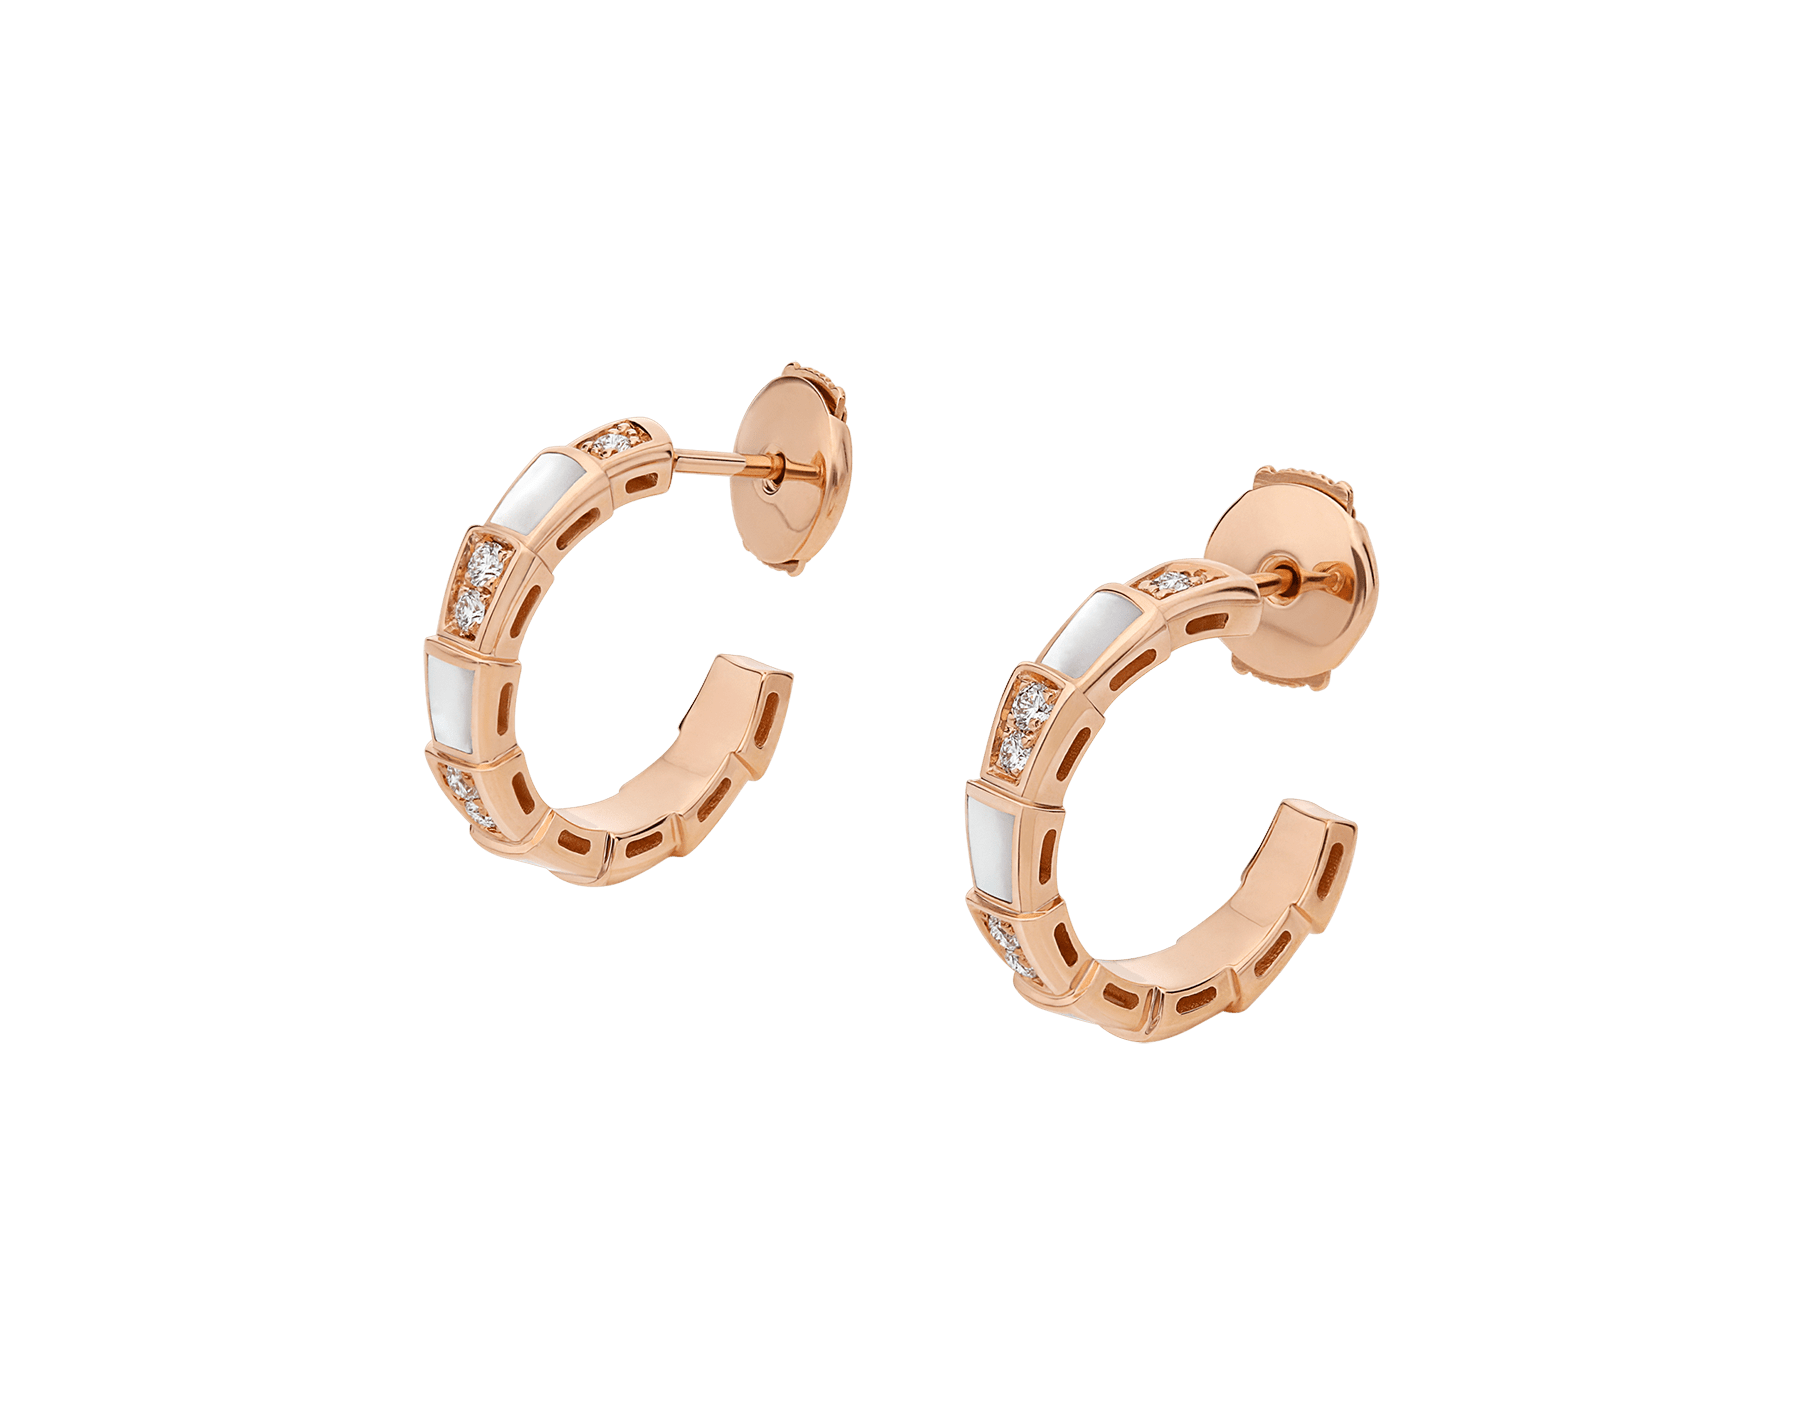 Serpenti Viper 18 kt rose gold earrings set with mother-of-pearl elements and pavé diamonds (0.31 ct) 356170 image 2